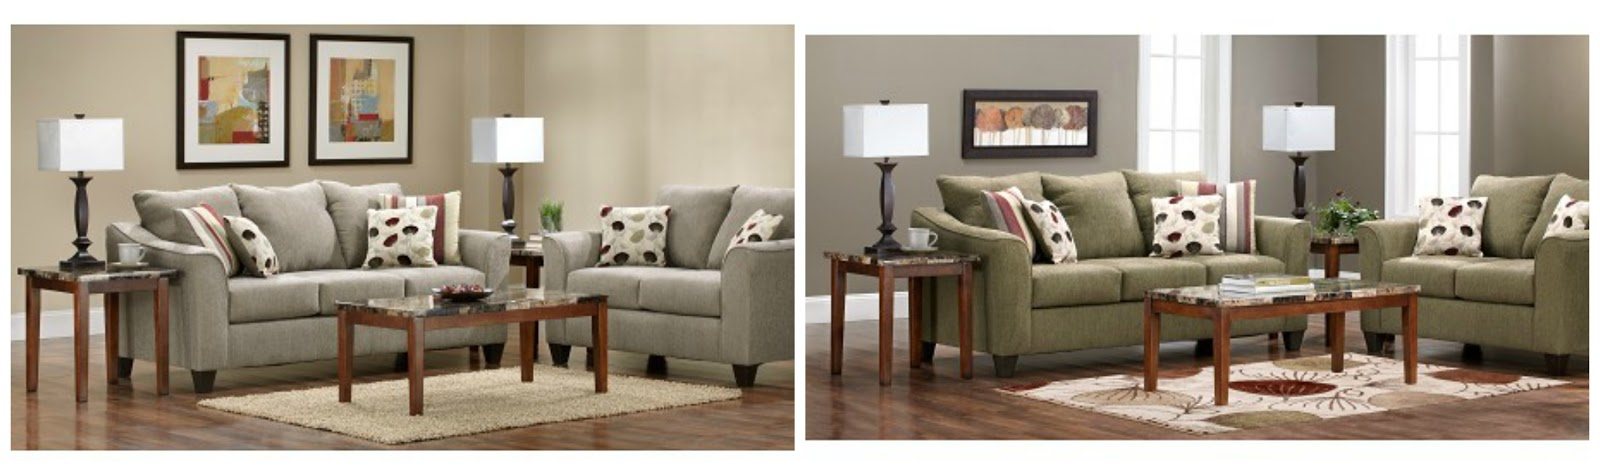 Our Living Room Groups   Stylish And Comfortable. Slumberland Furniture At  The Lake Of The Ozarks ...